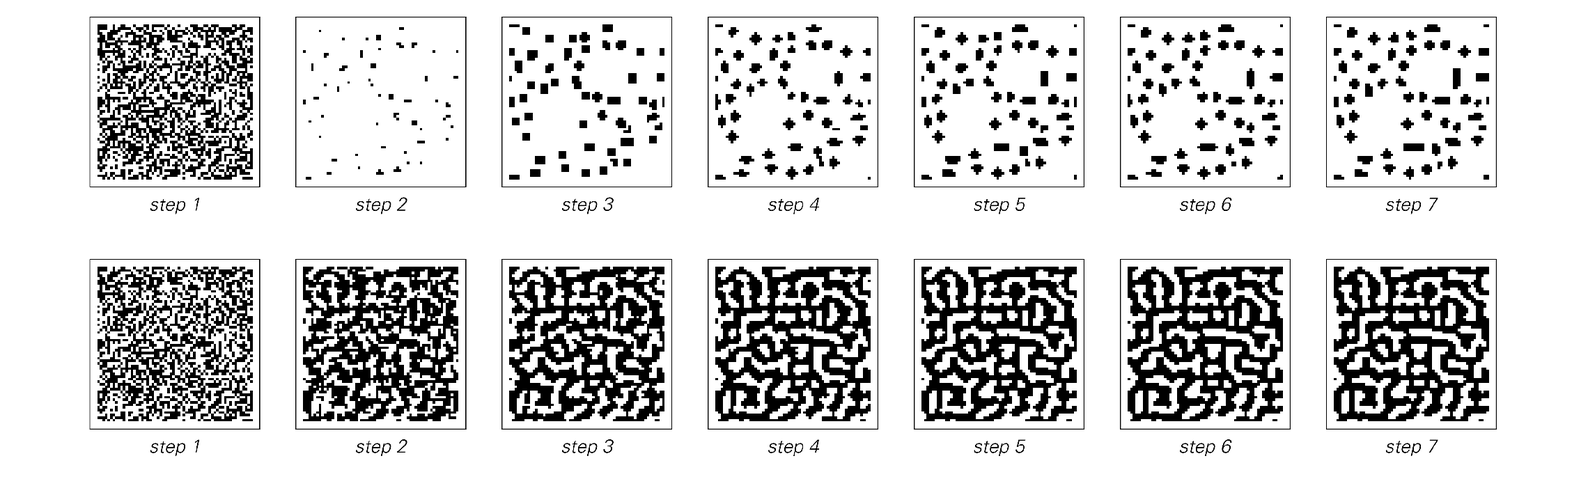 Evolution of simple two-dimensional cellular automata